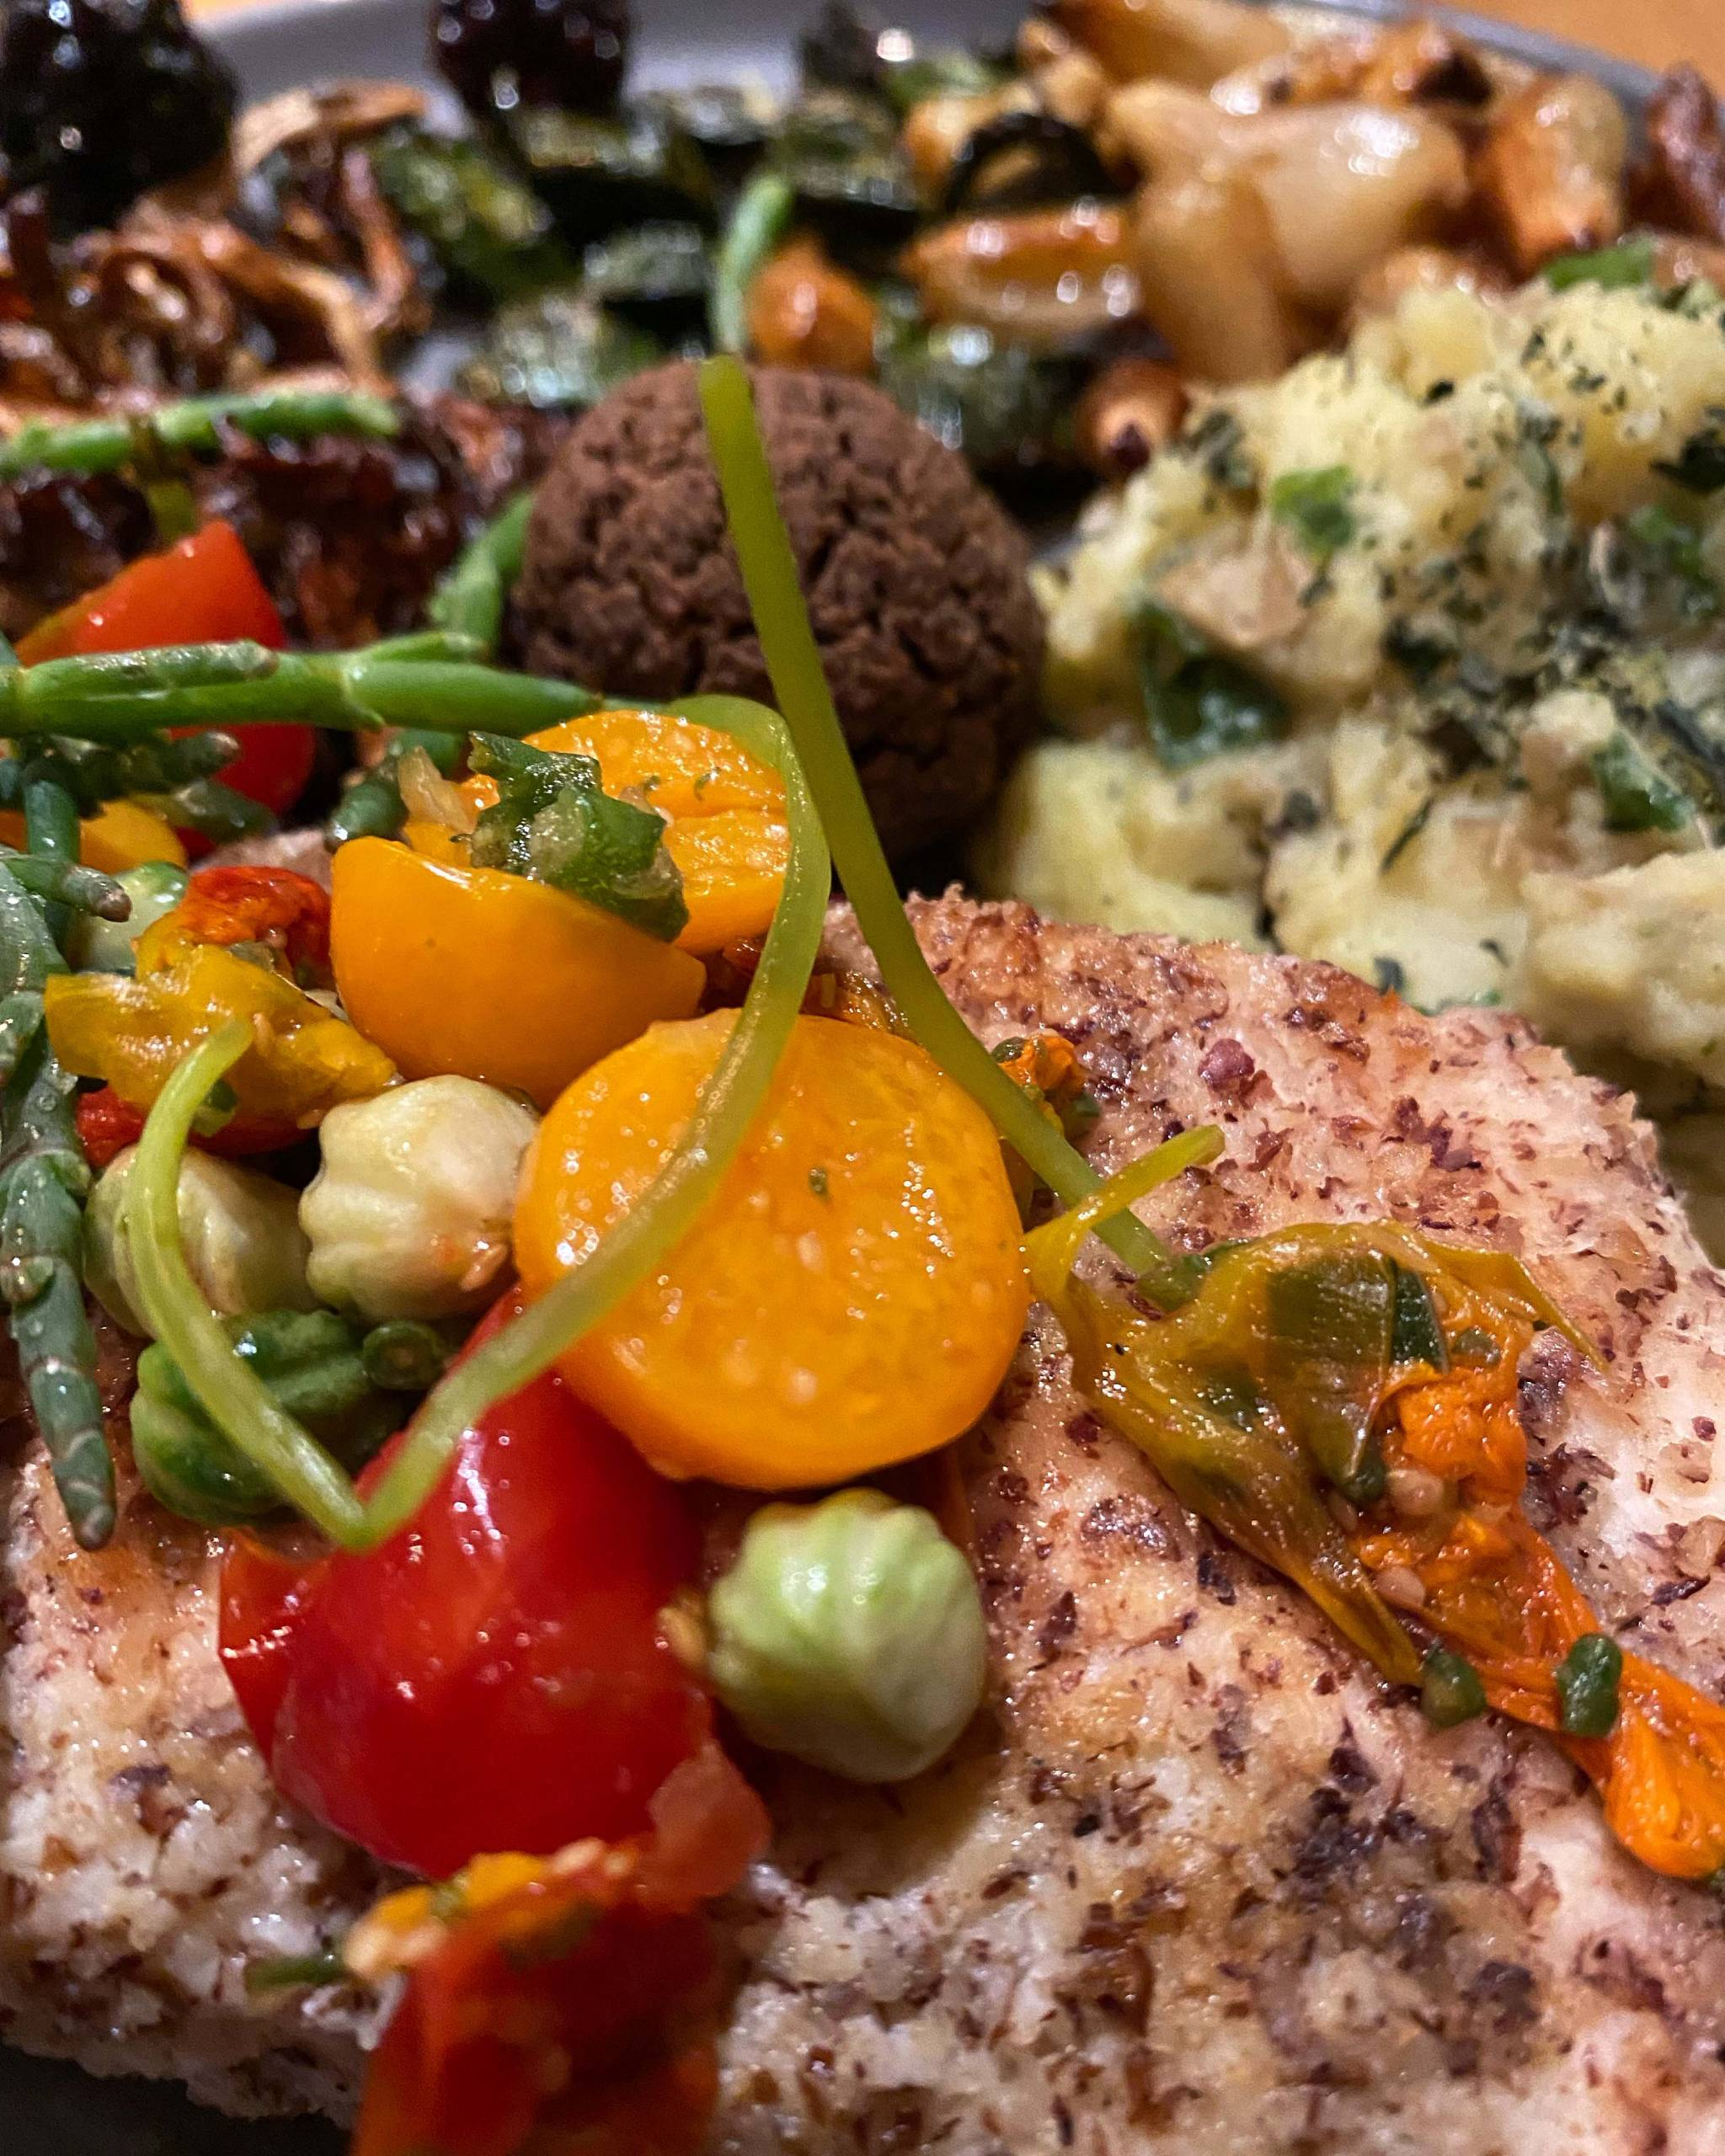 Pan-fried halibut with a hazelnut flour curst and a colorful gooseberry salsa